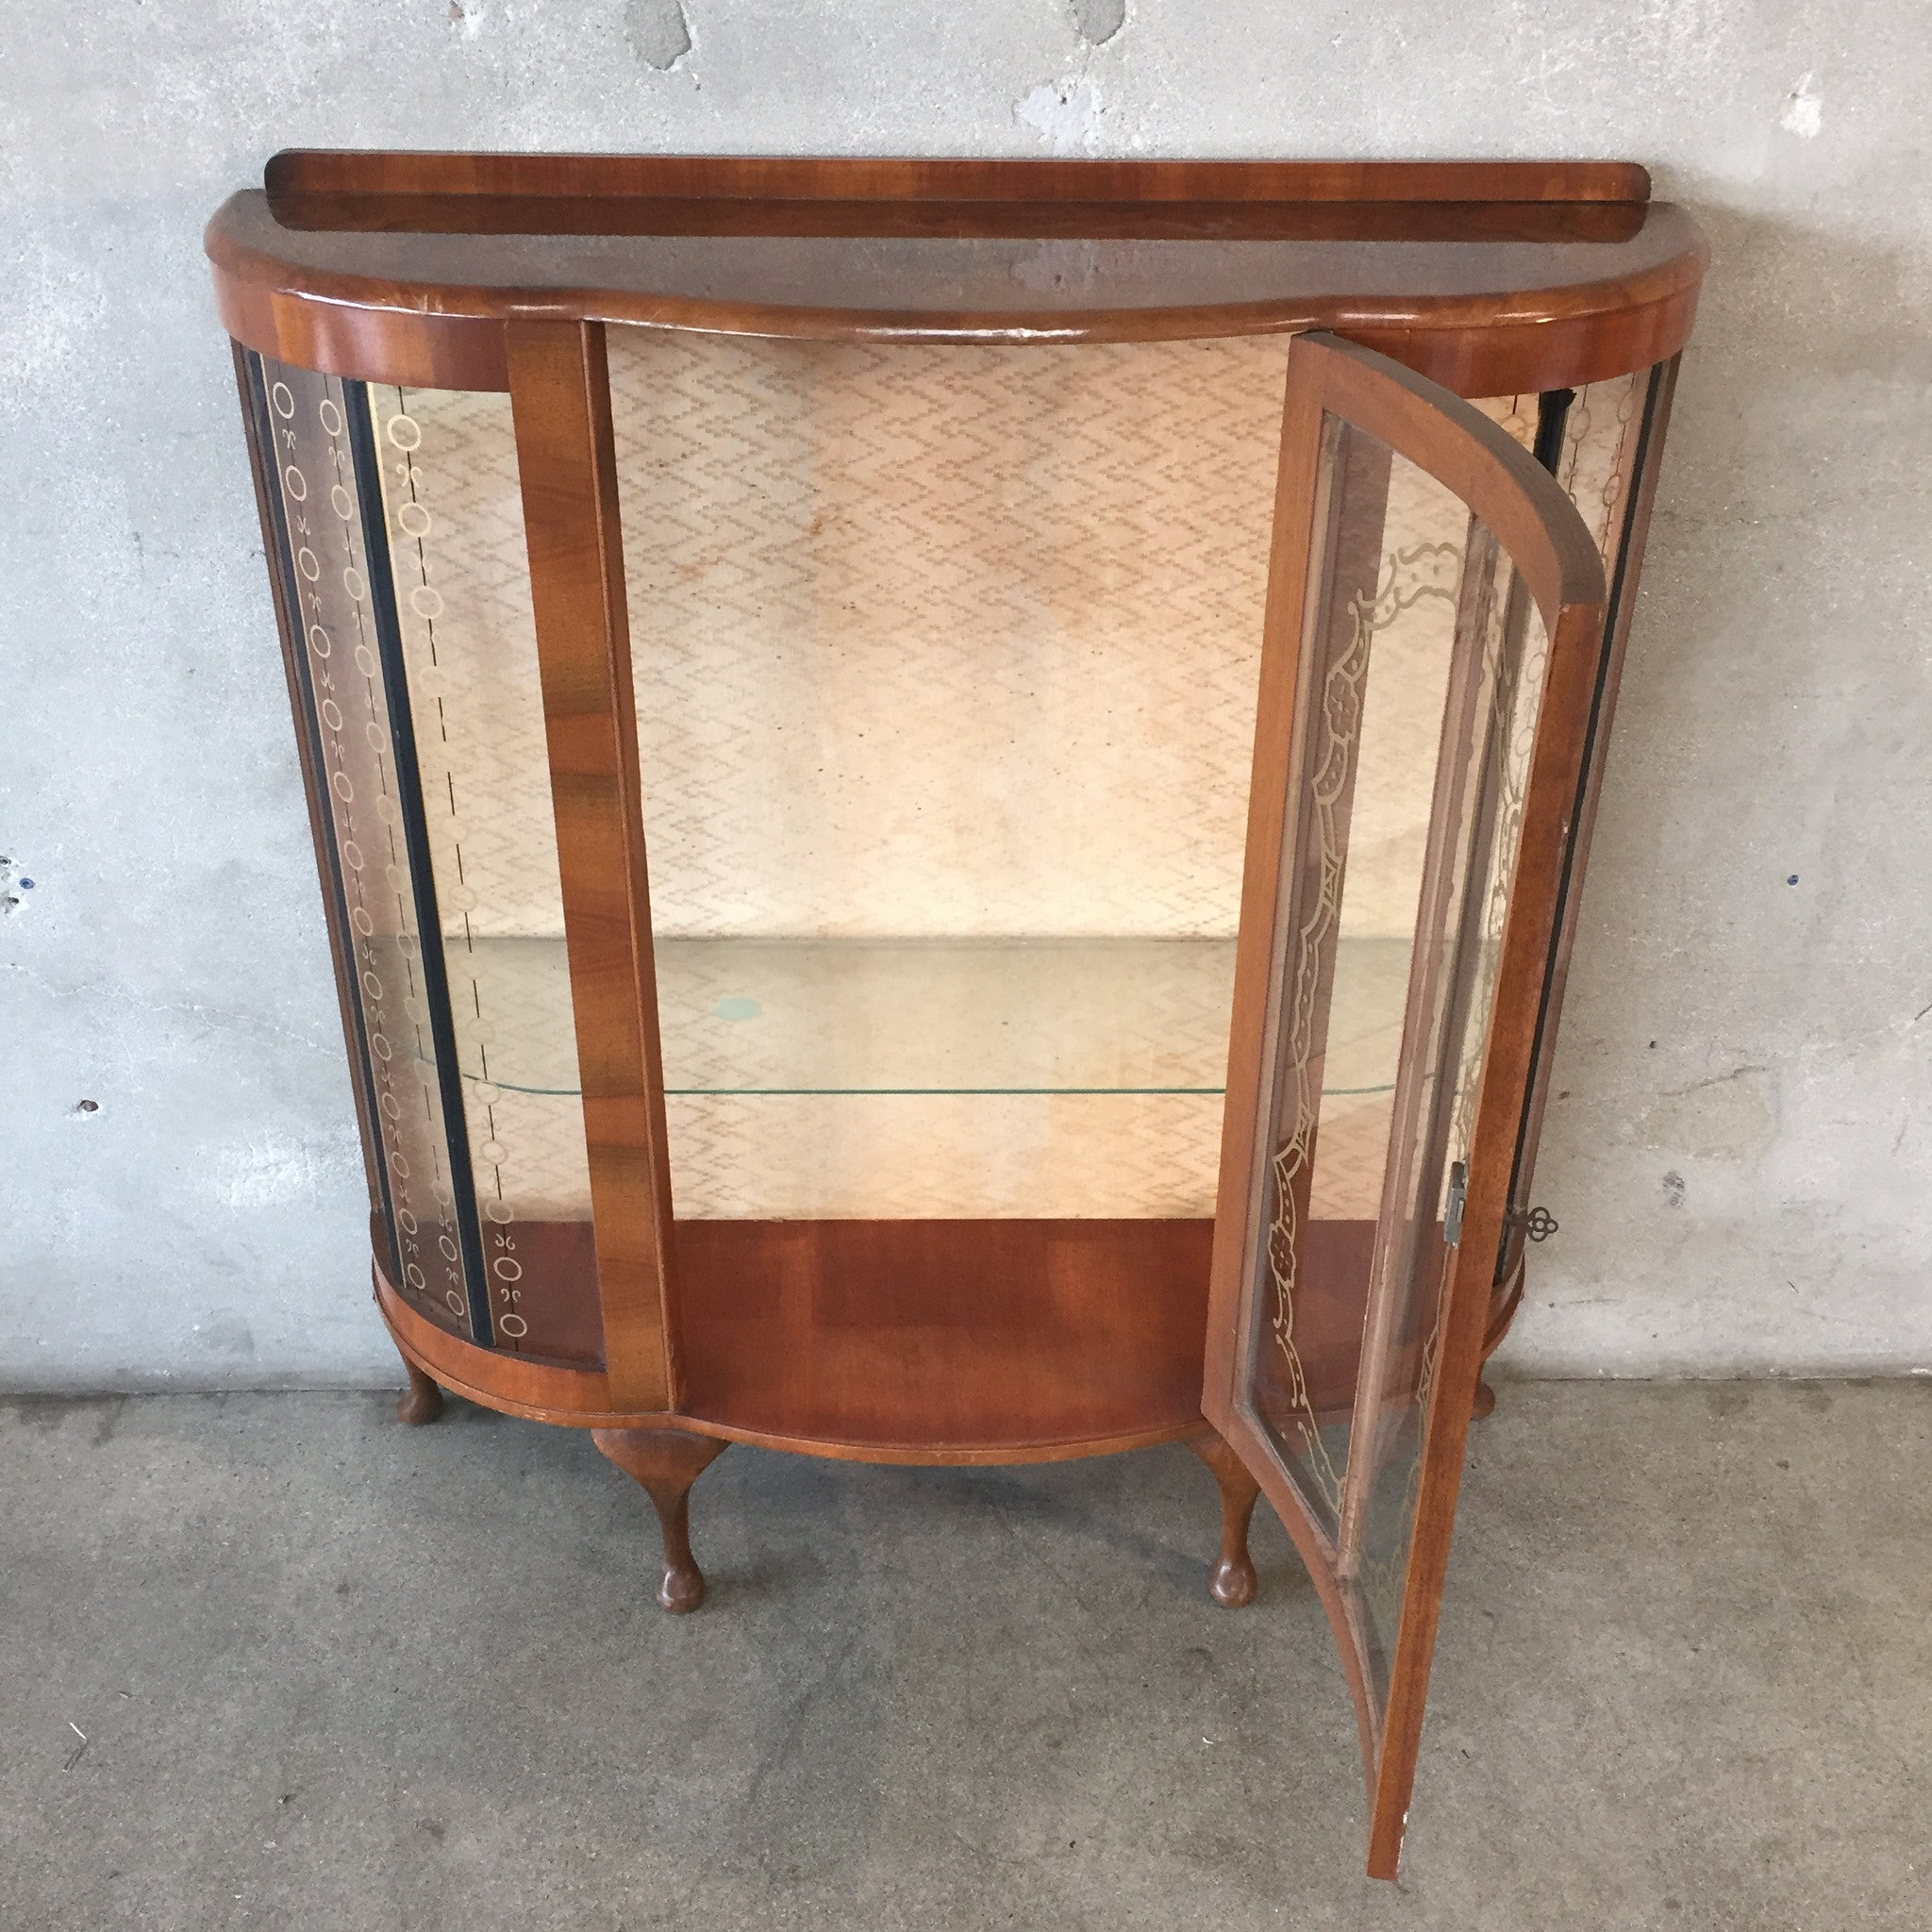 Glass Curio Cabinets With Lights Antique Curved Glass Curio Cabinet Urbanamericana